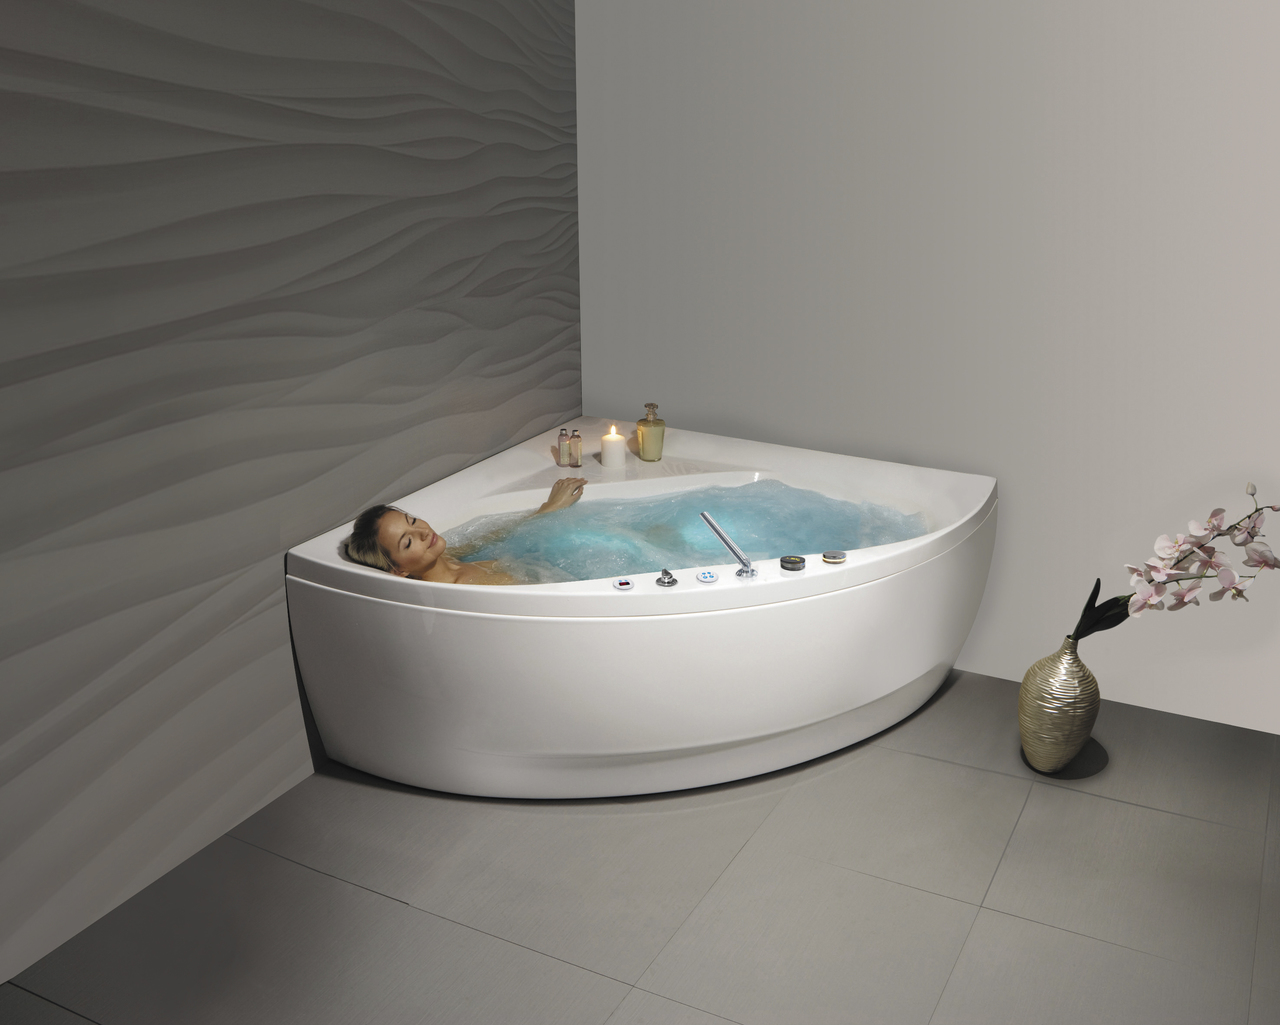 Ordinaire Aquatica Olivia Wht Spa Jetted Corner Bathtub Usa 01 1 (web)